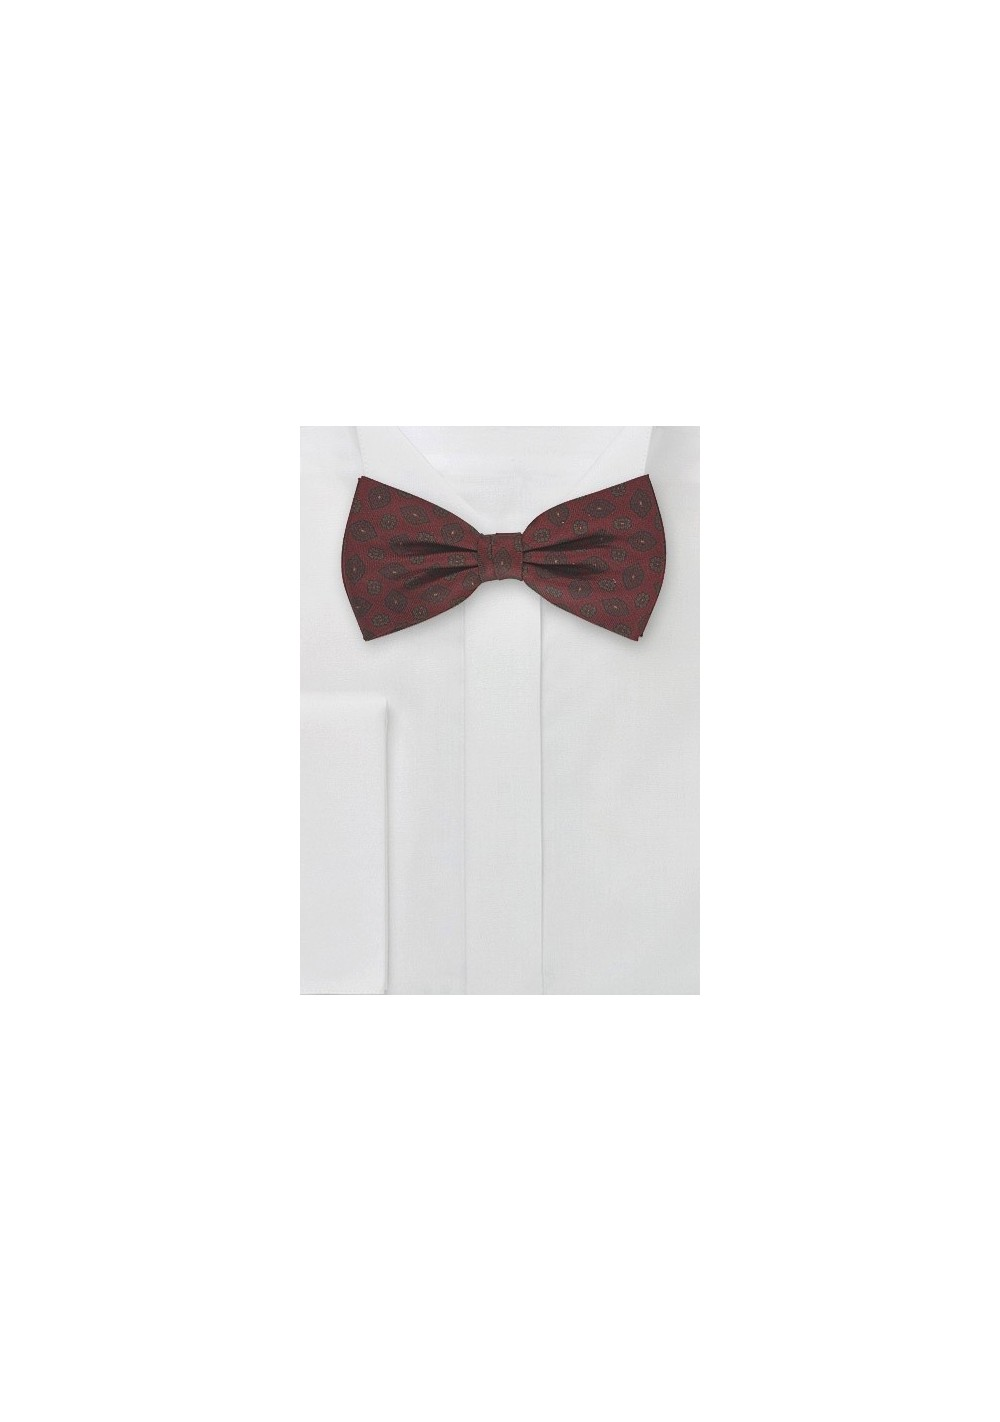 Mens Bow Tie in Burgundy Reds